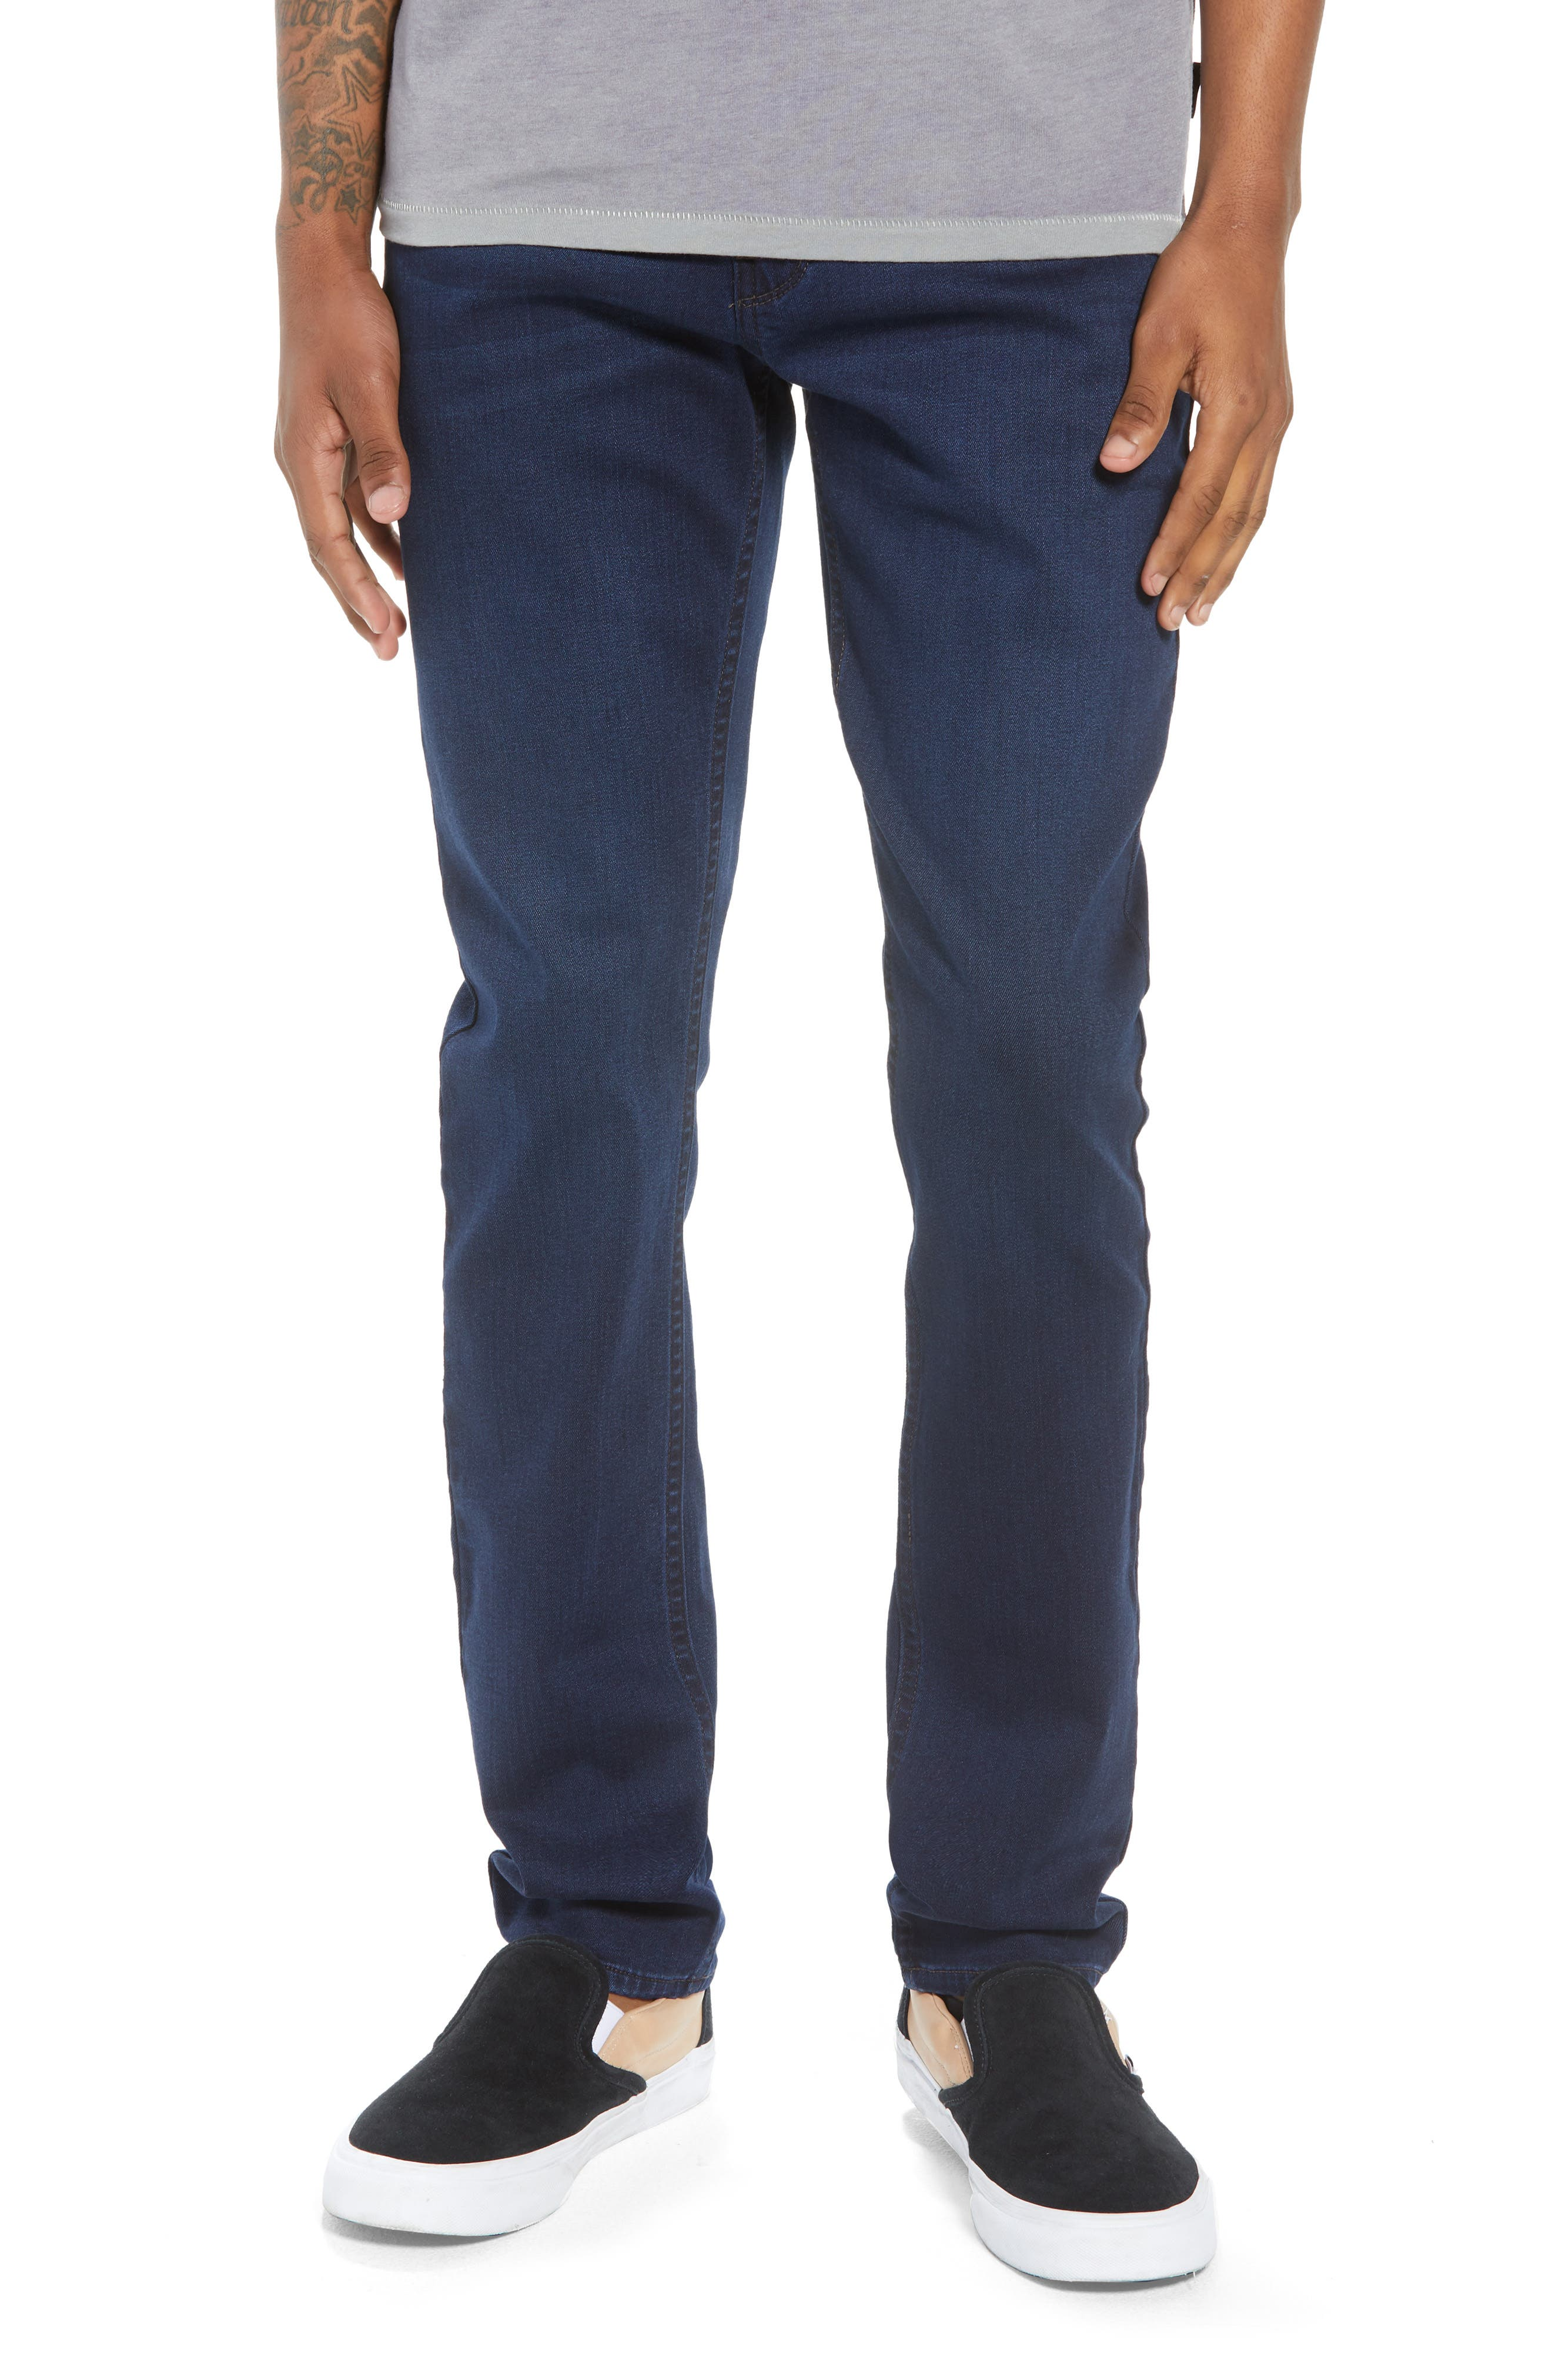 Transcend - Croft Skinny Fit Jeans,                         Main,                         color, HAYWORD